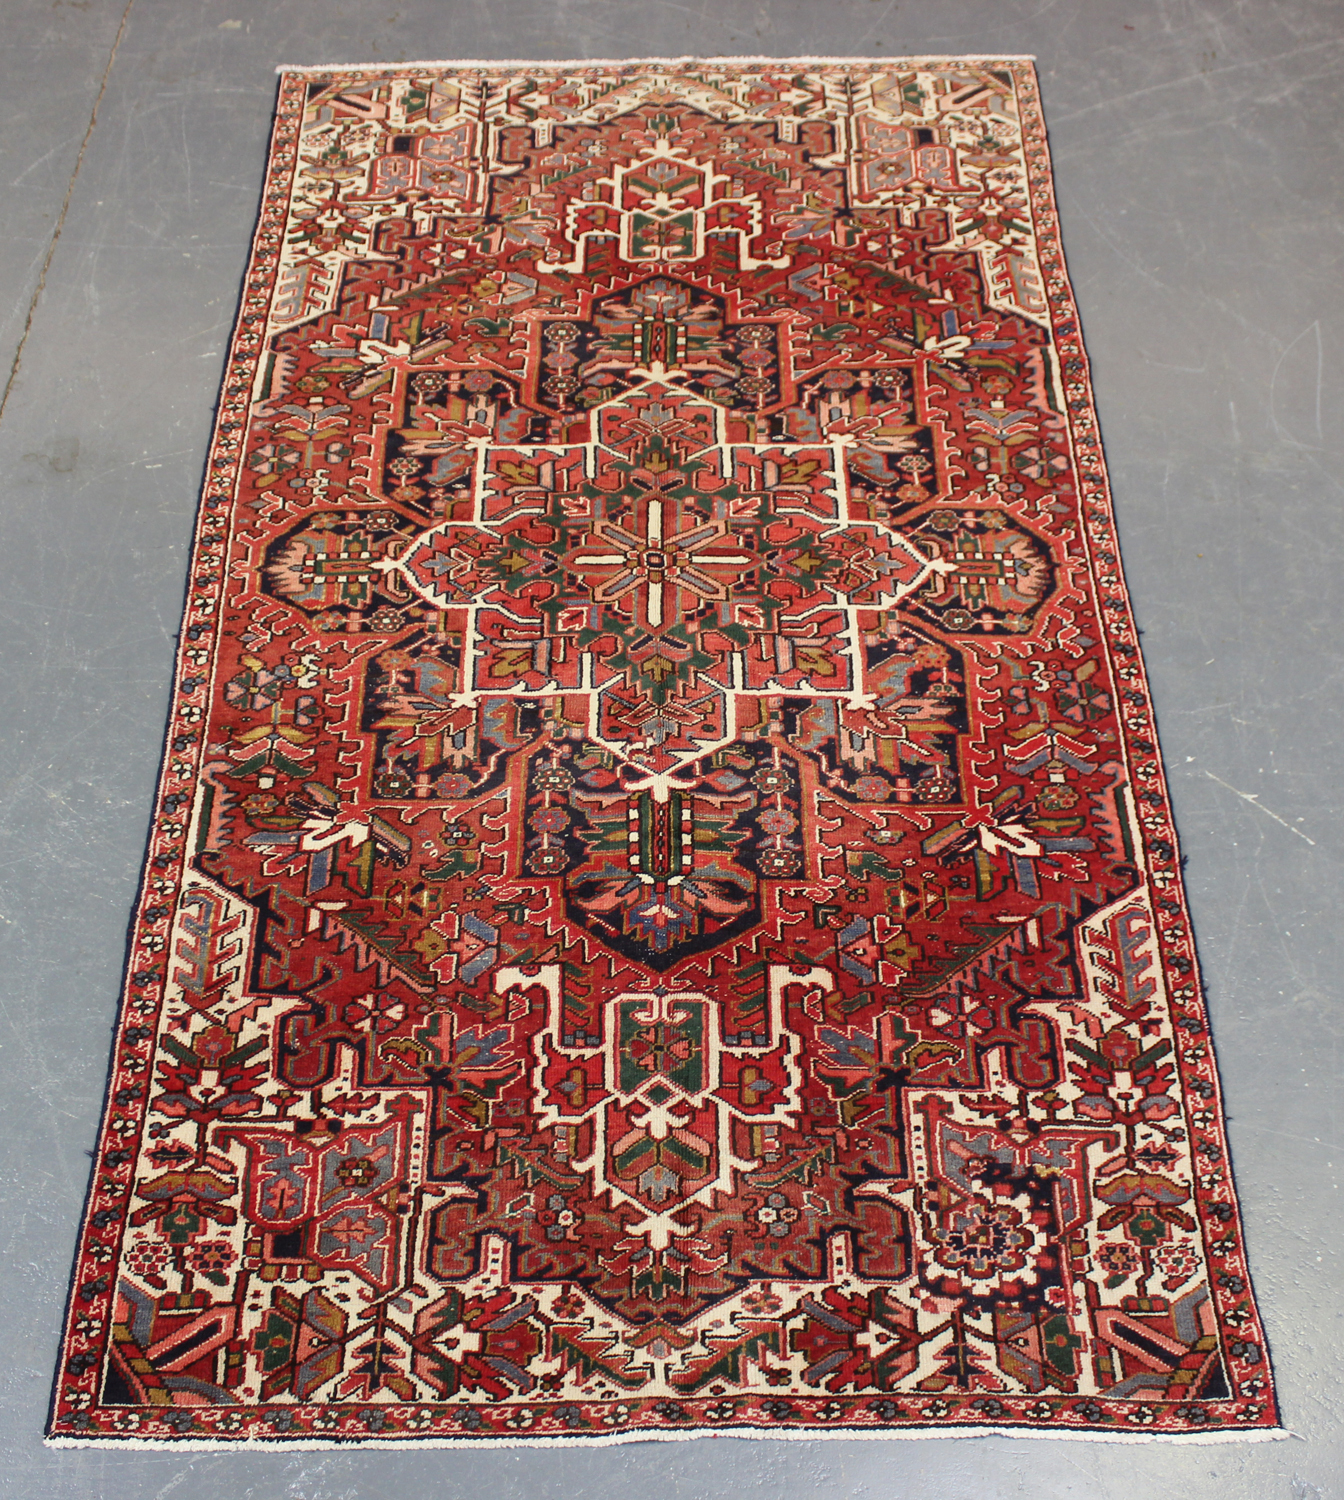 A Heriz rug, North-west Persia, mid-20th century, the terracotta field with a bold flowerhead